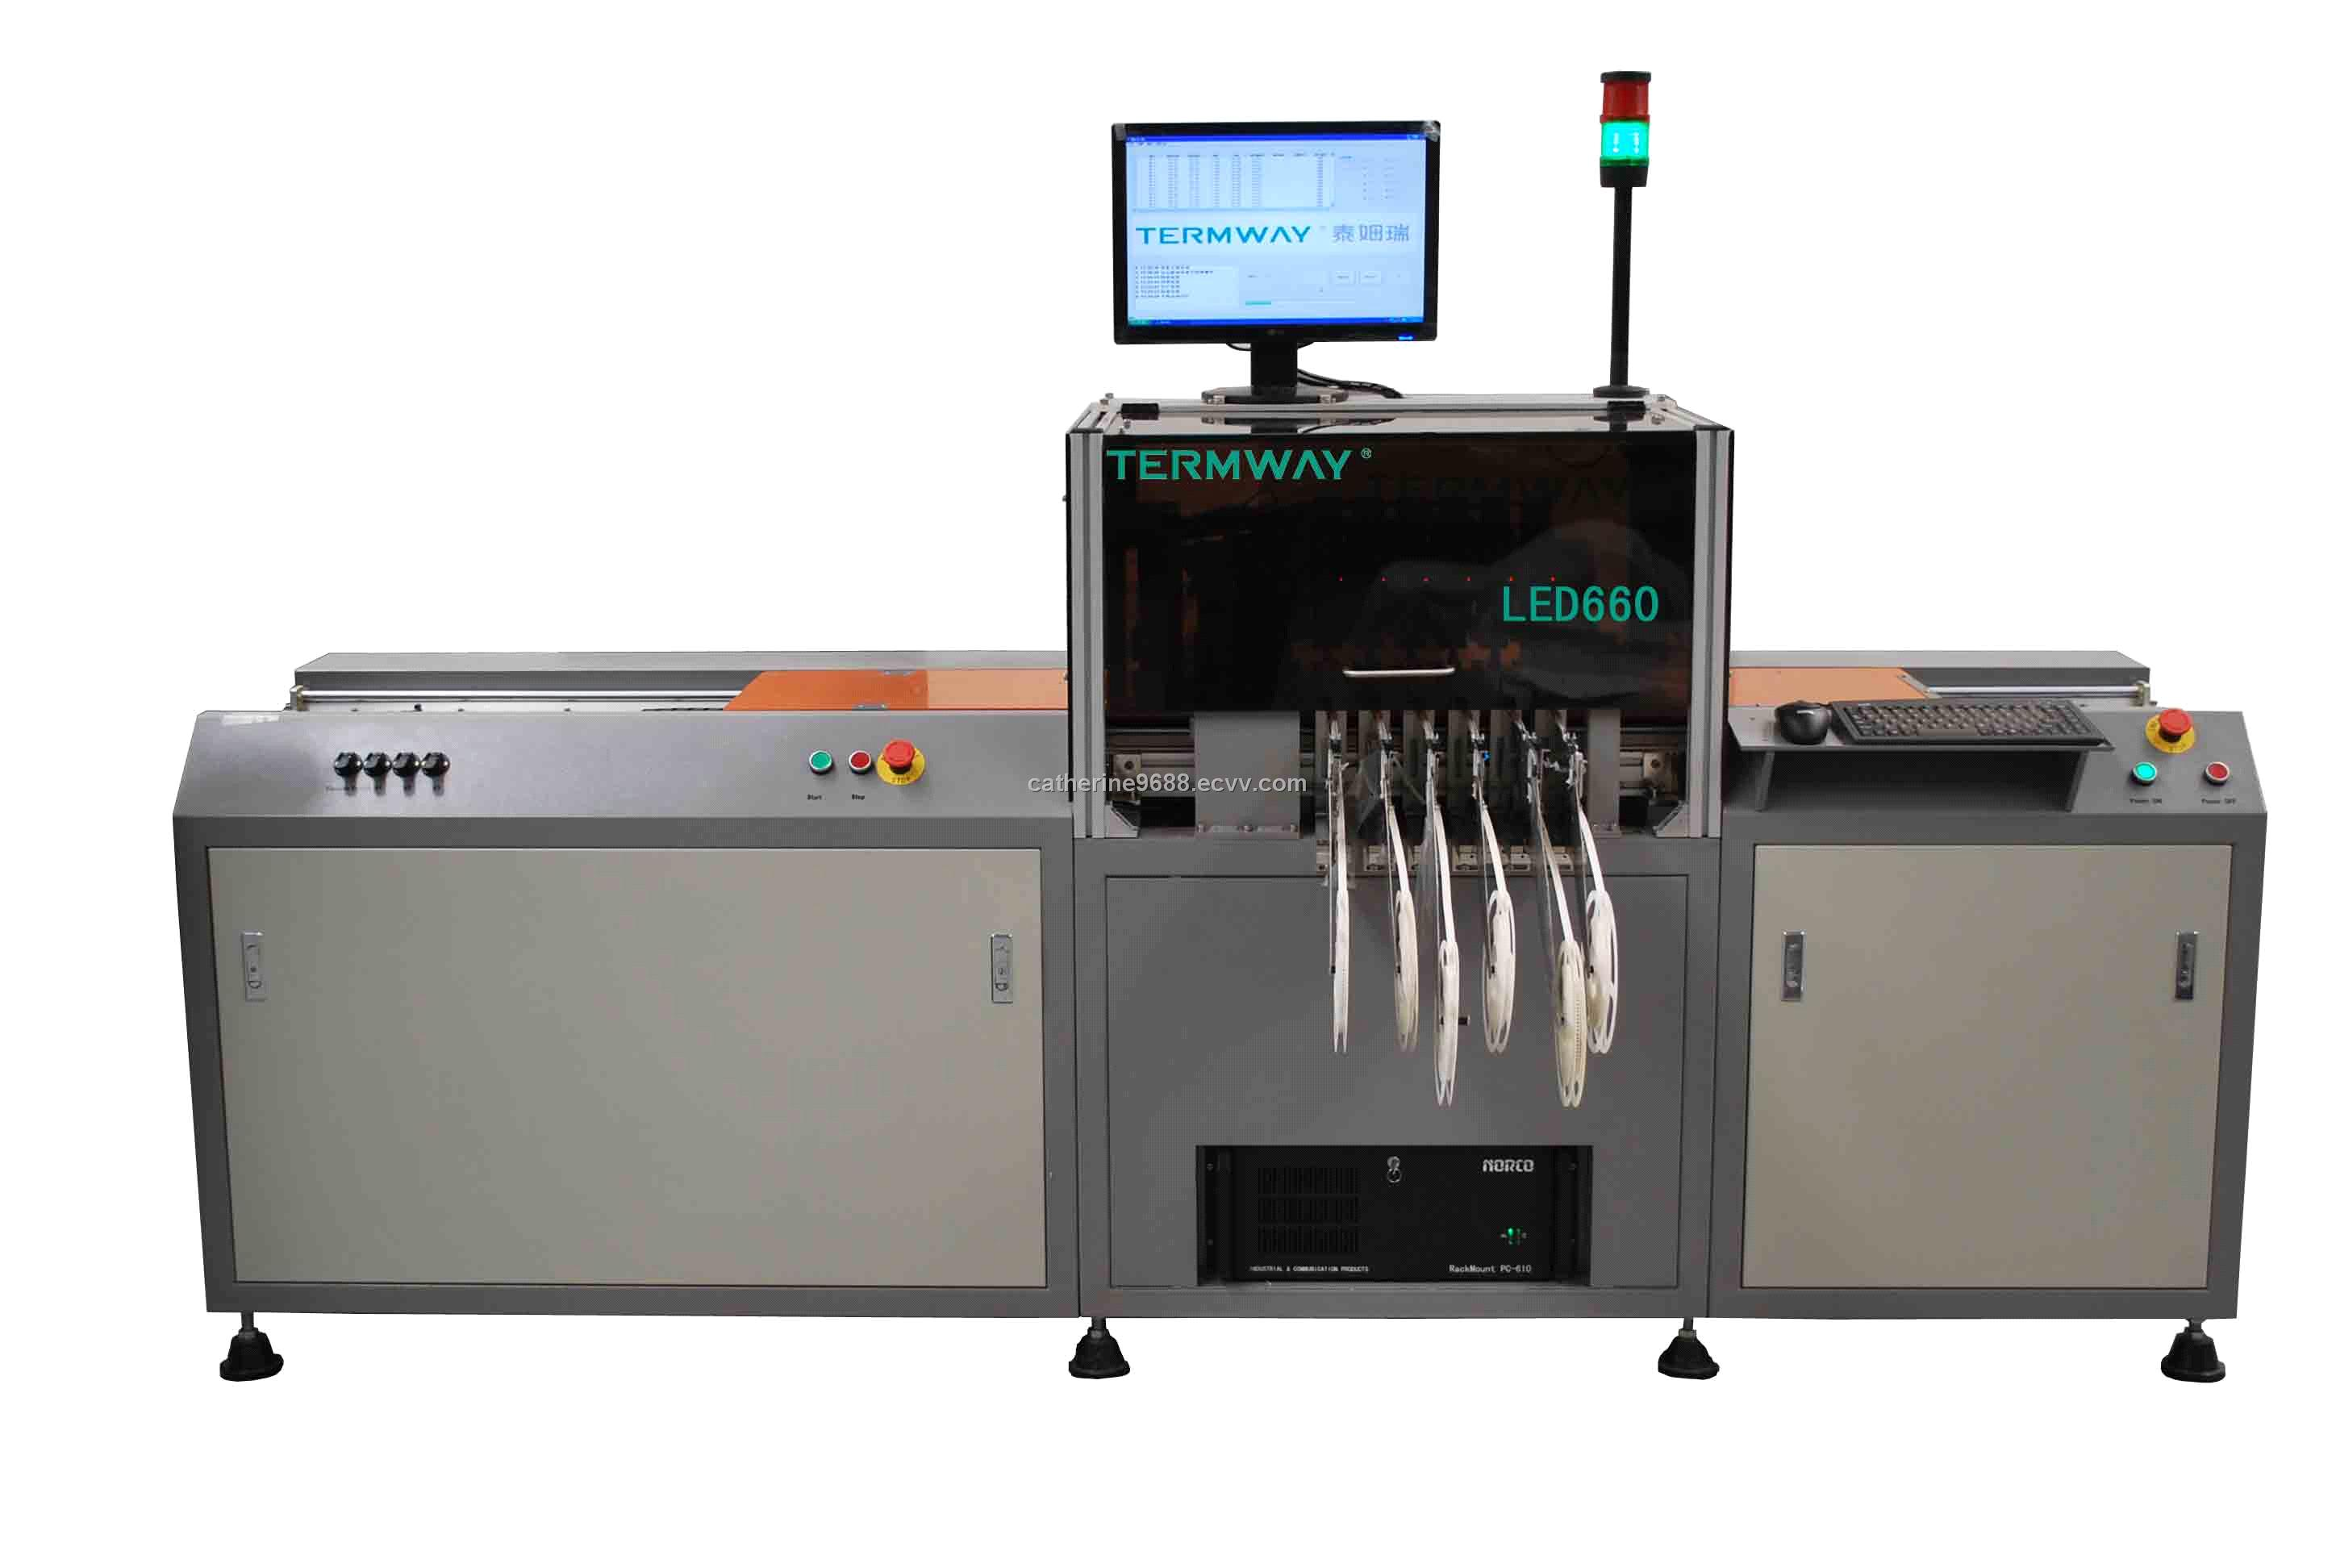 Smt Assembly Line Pcb Led Automatic Chip Mounter Inverter Welding Board Cutting Machine Circuit Industry Model Led660